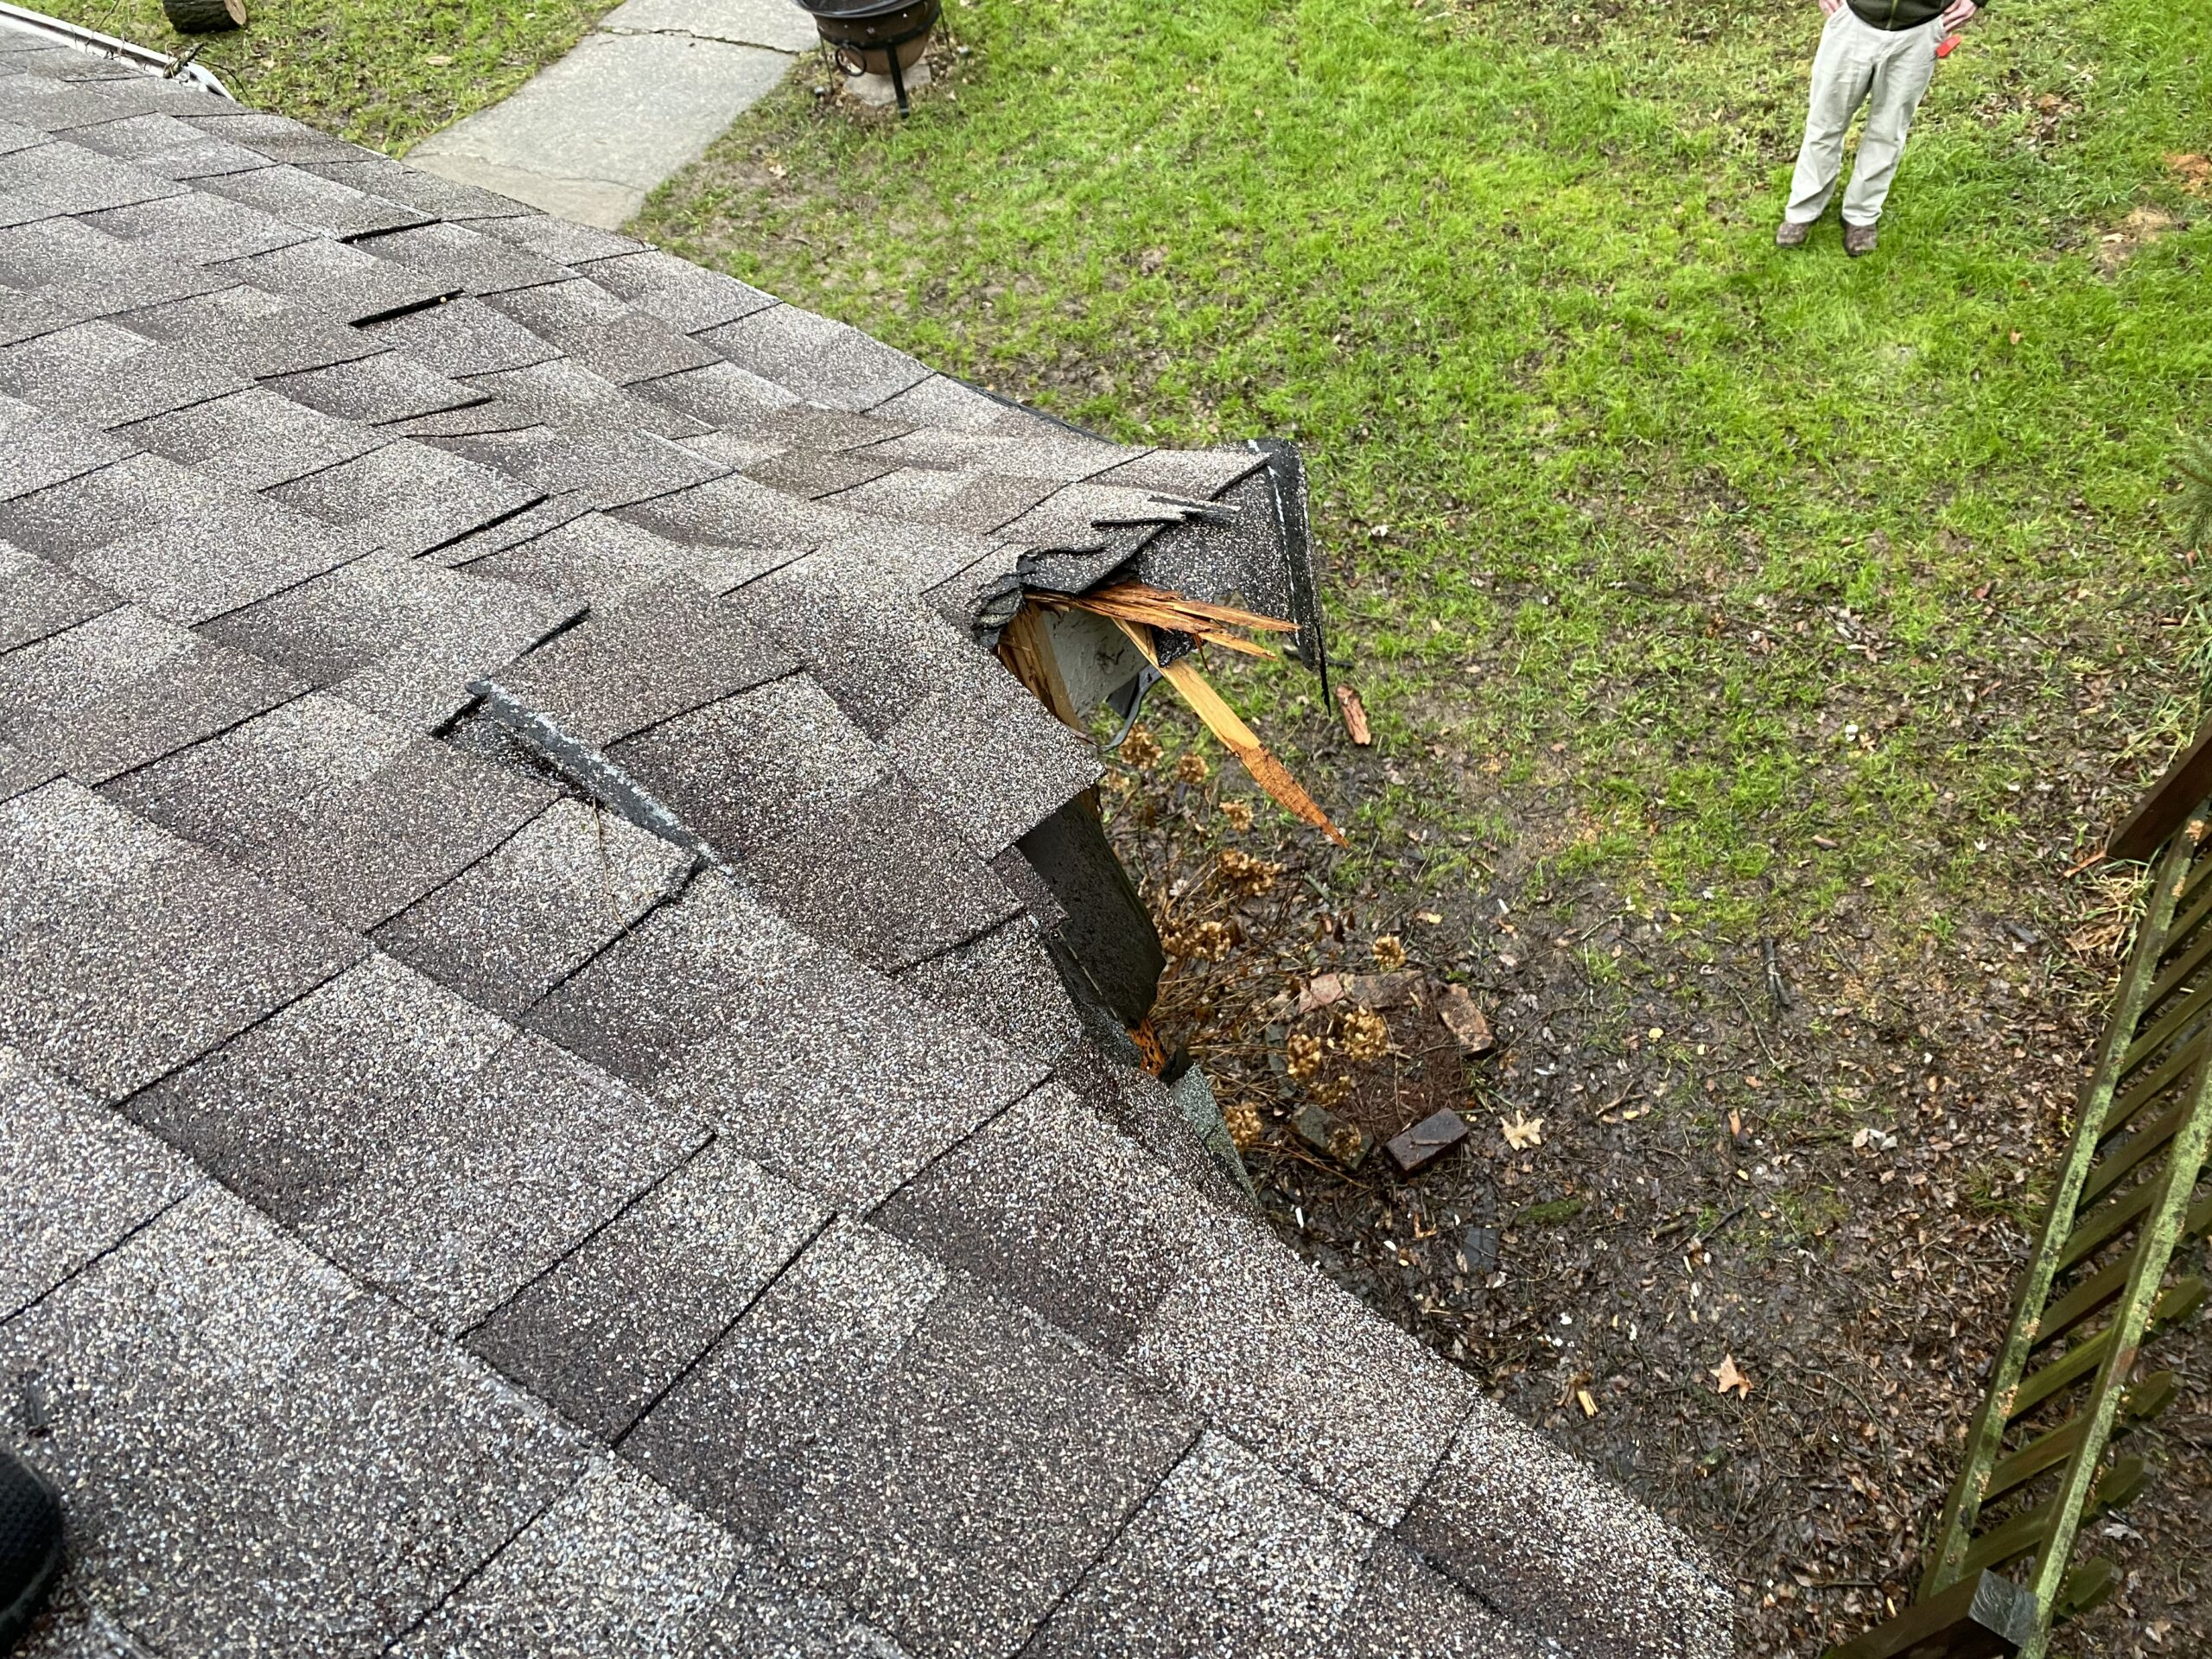 This is a picture of a gray roof that has been damaged by a tree.